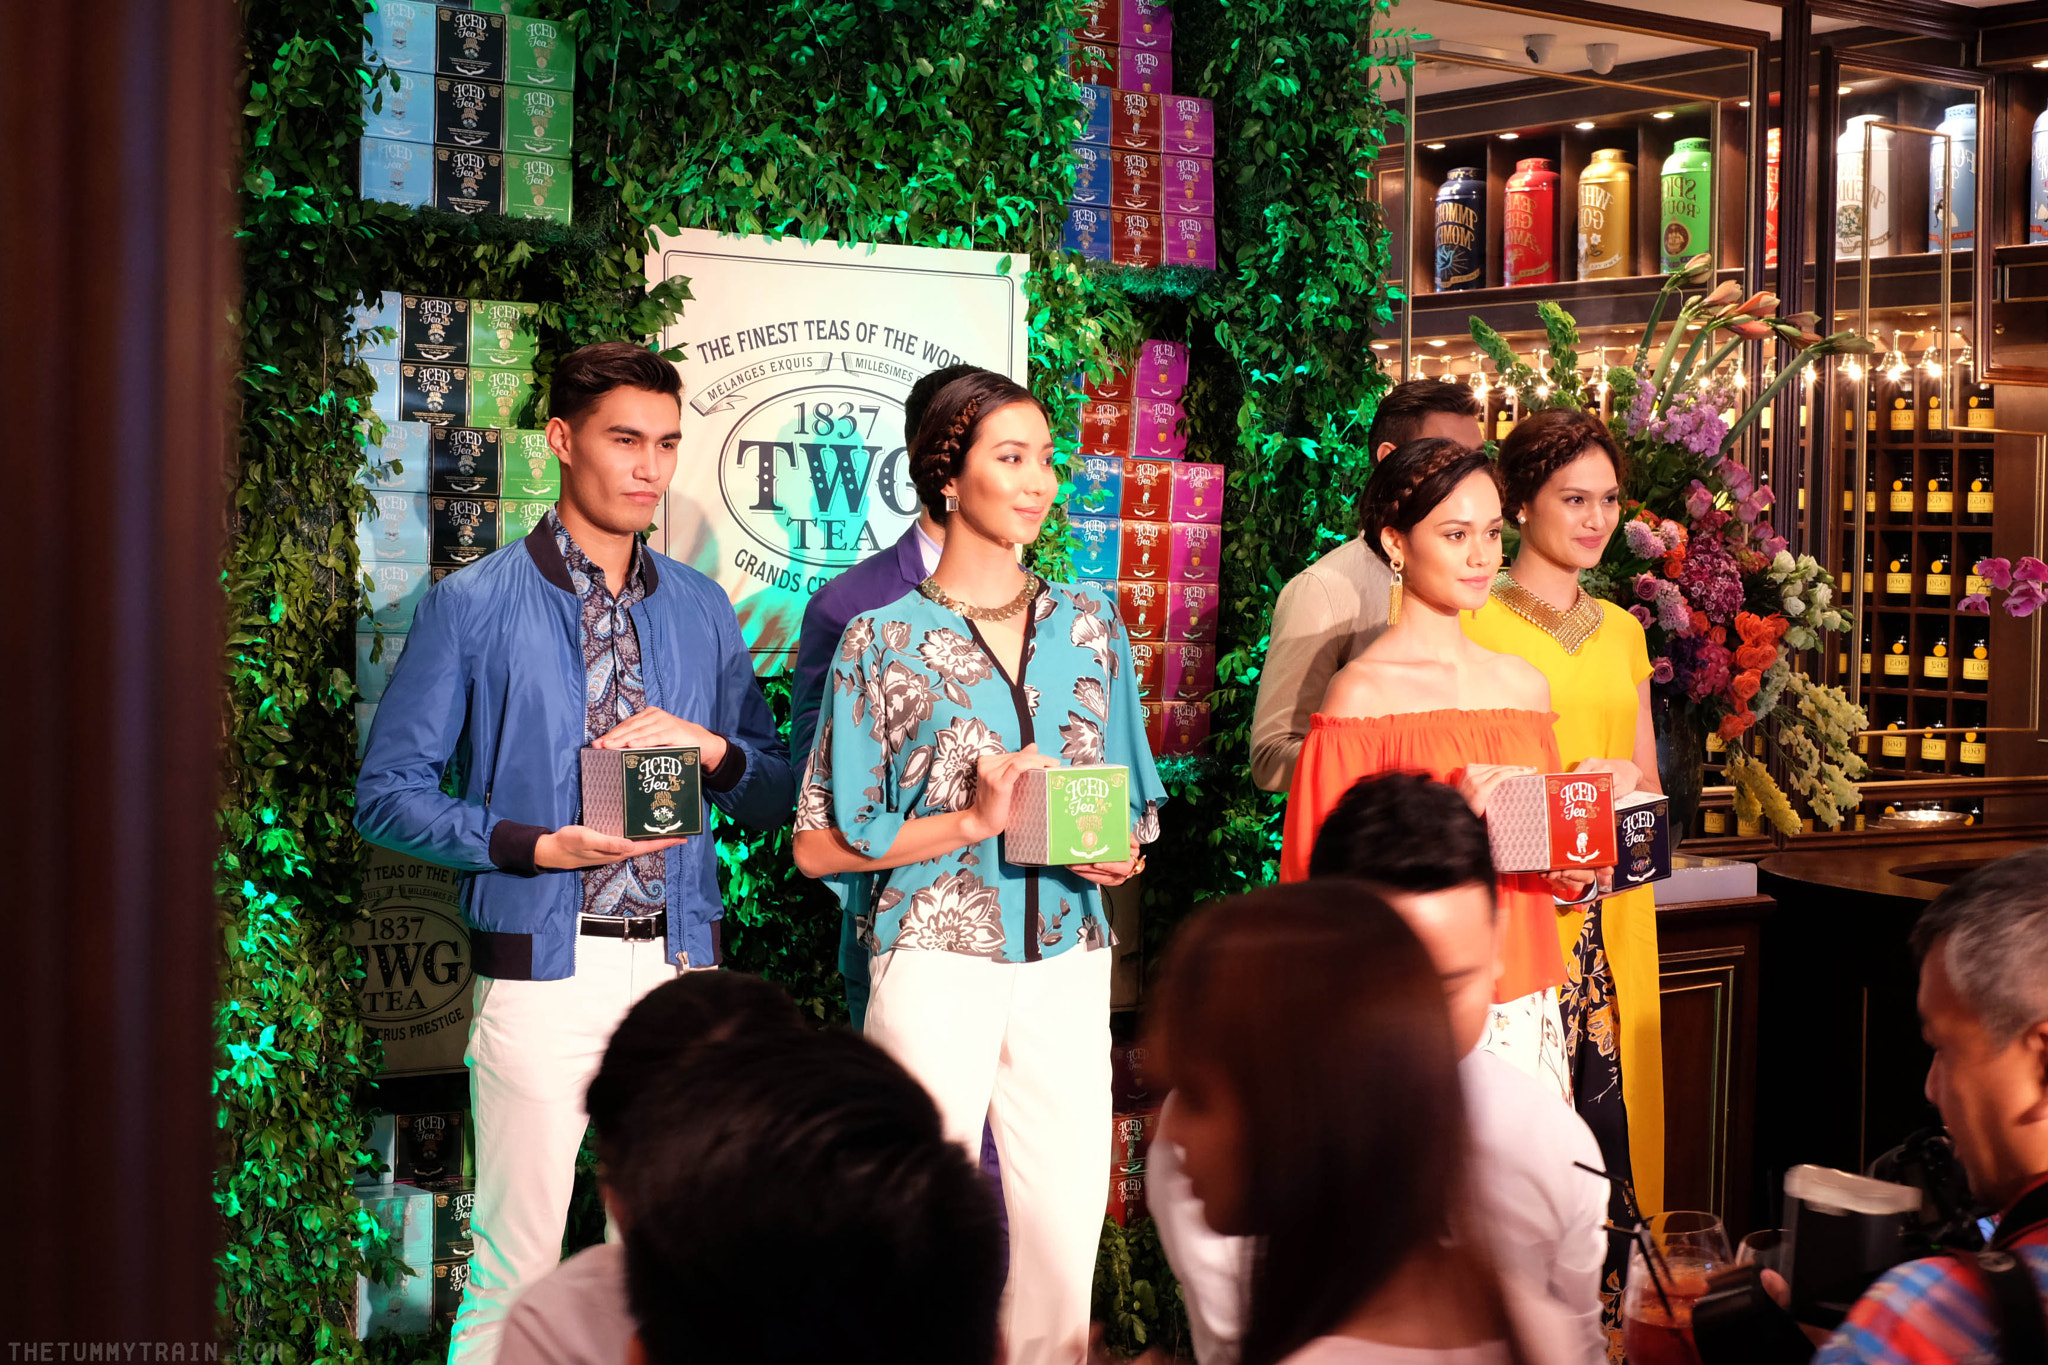 0e66c59e27d9f04ea59817d29d631432 - Beat the heat in luxurious style with the new TWG Iced Teas